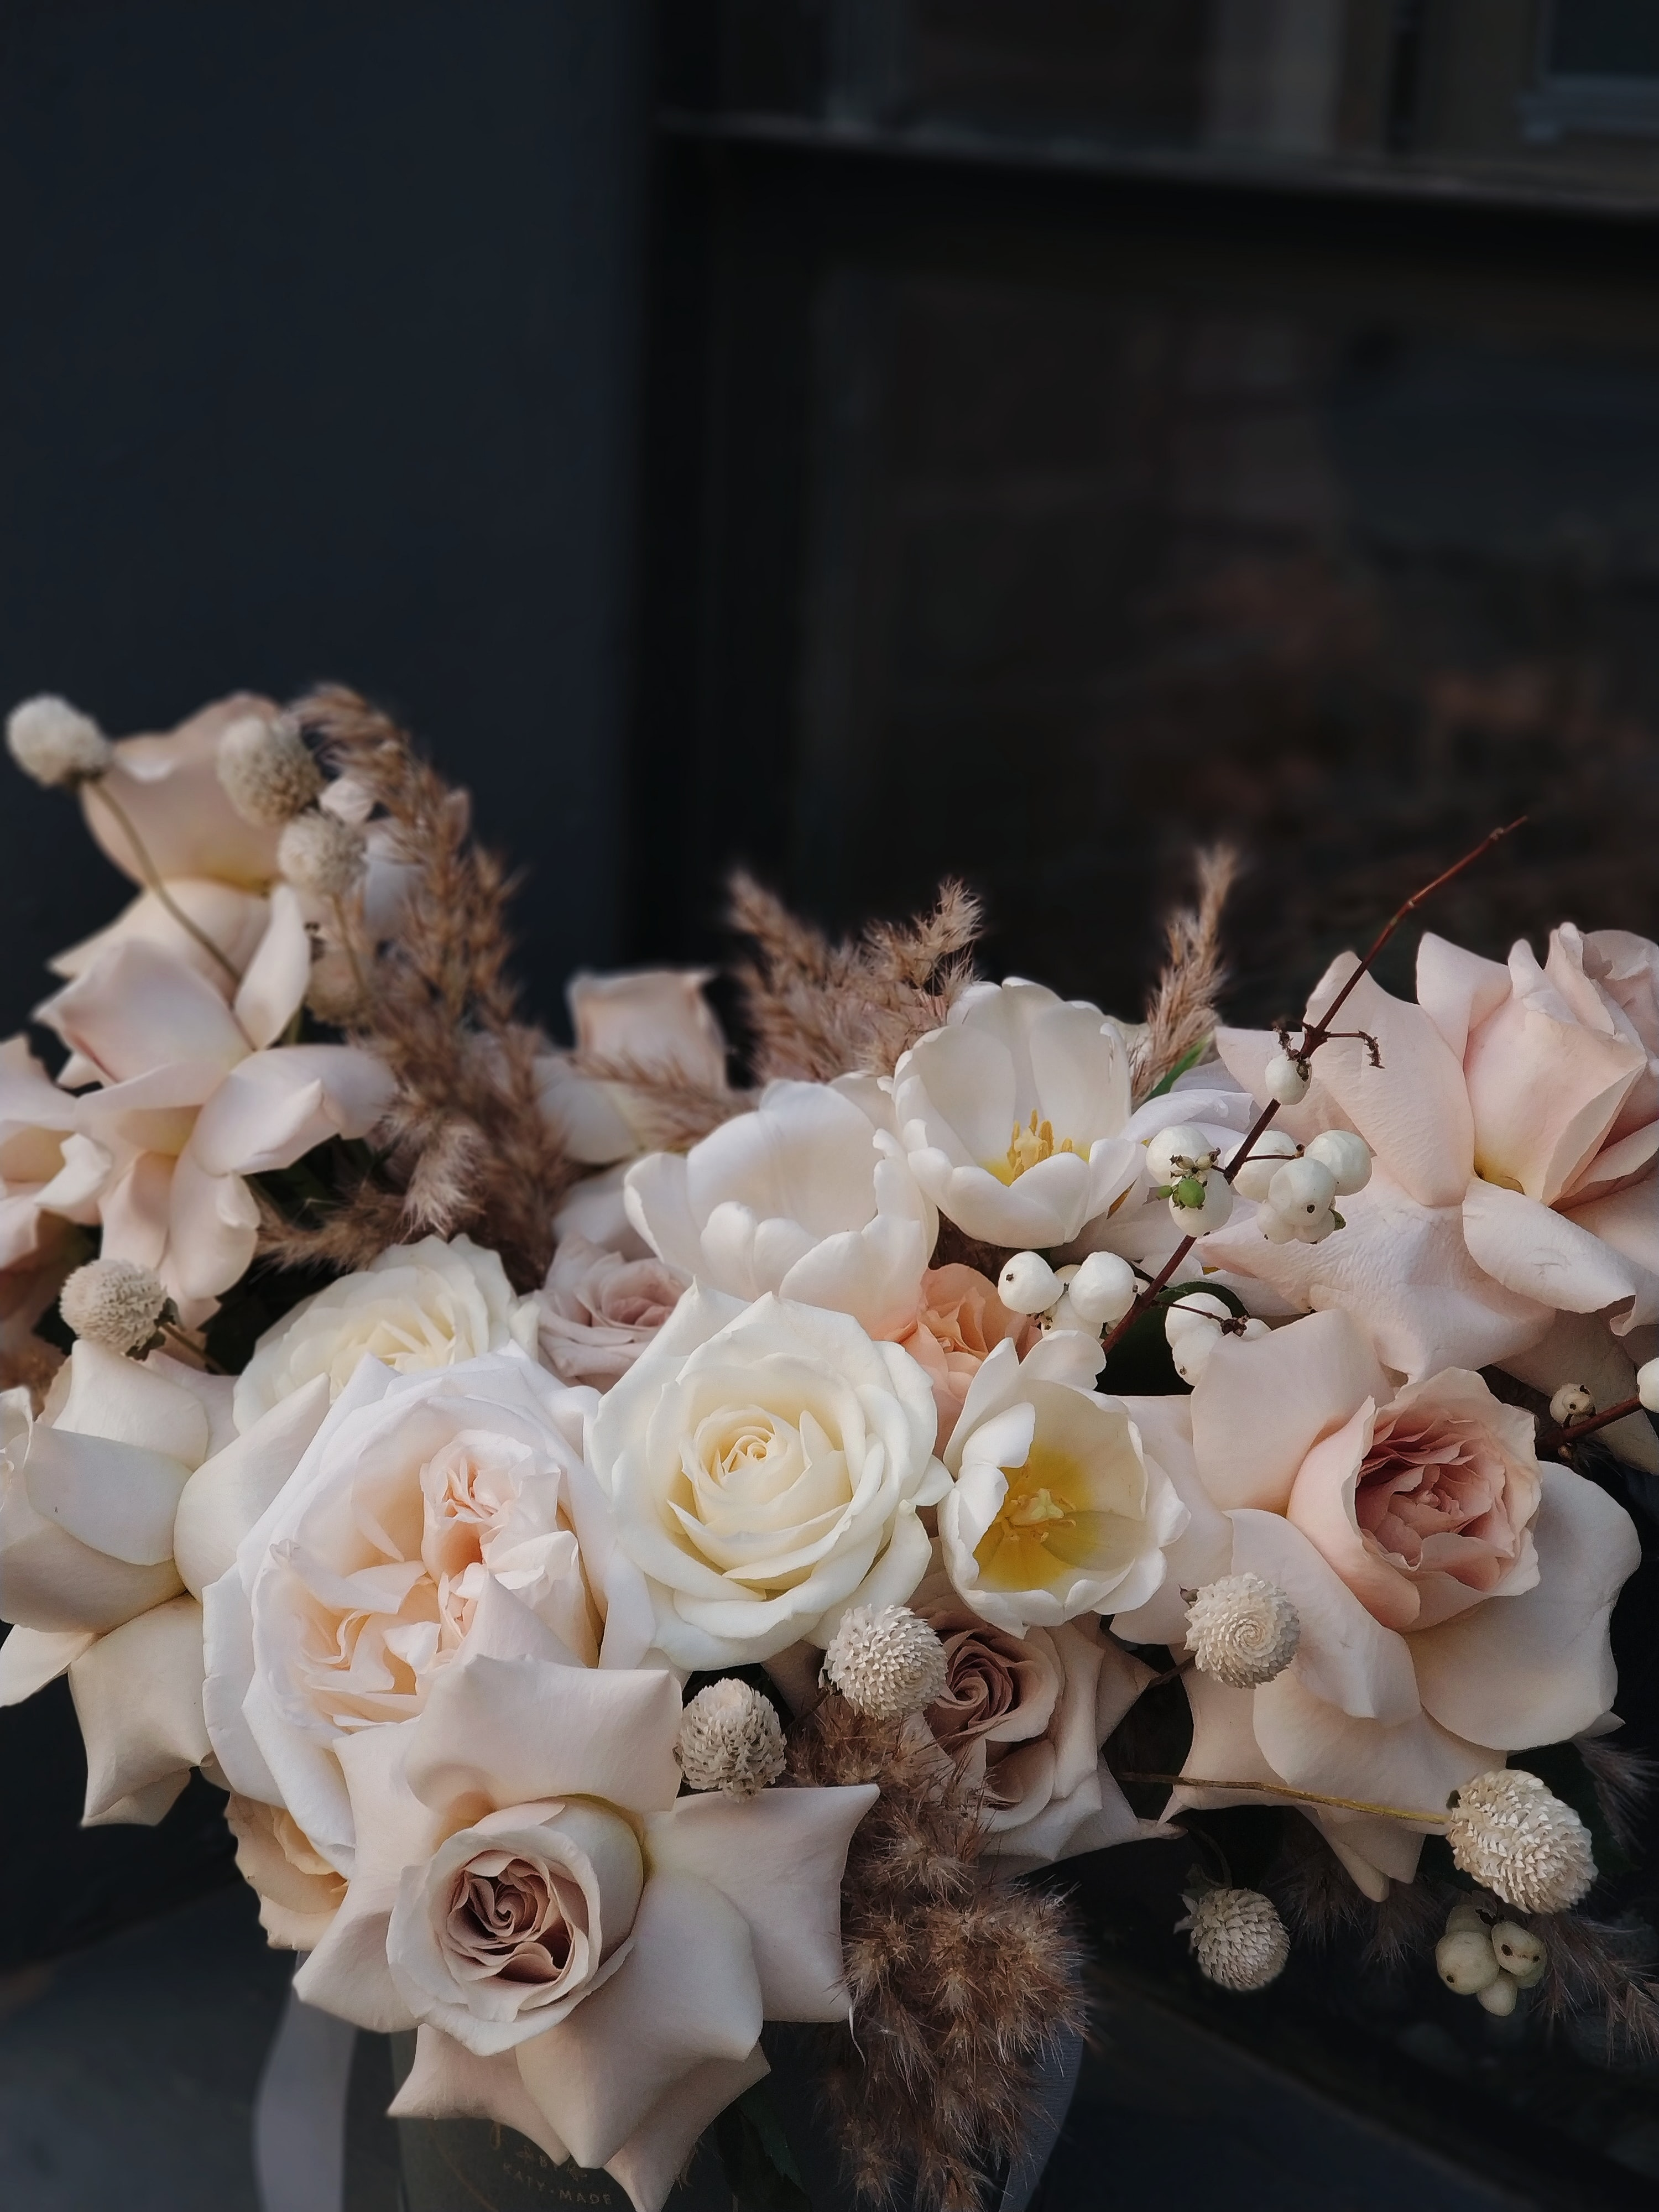 pink and white flower bouquet close-up photography